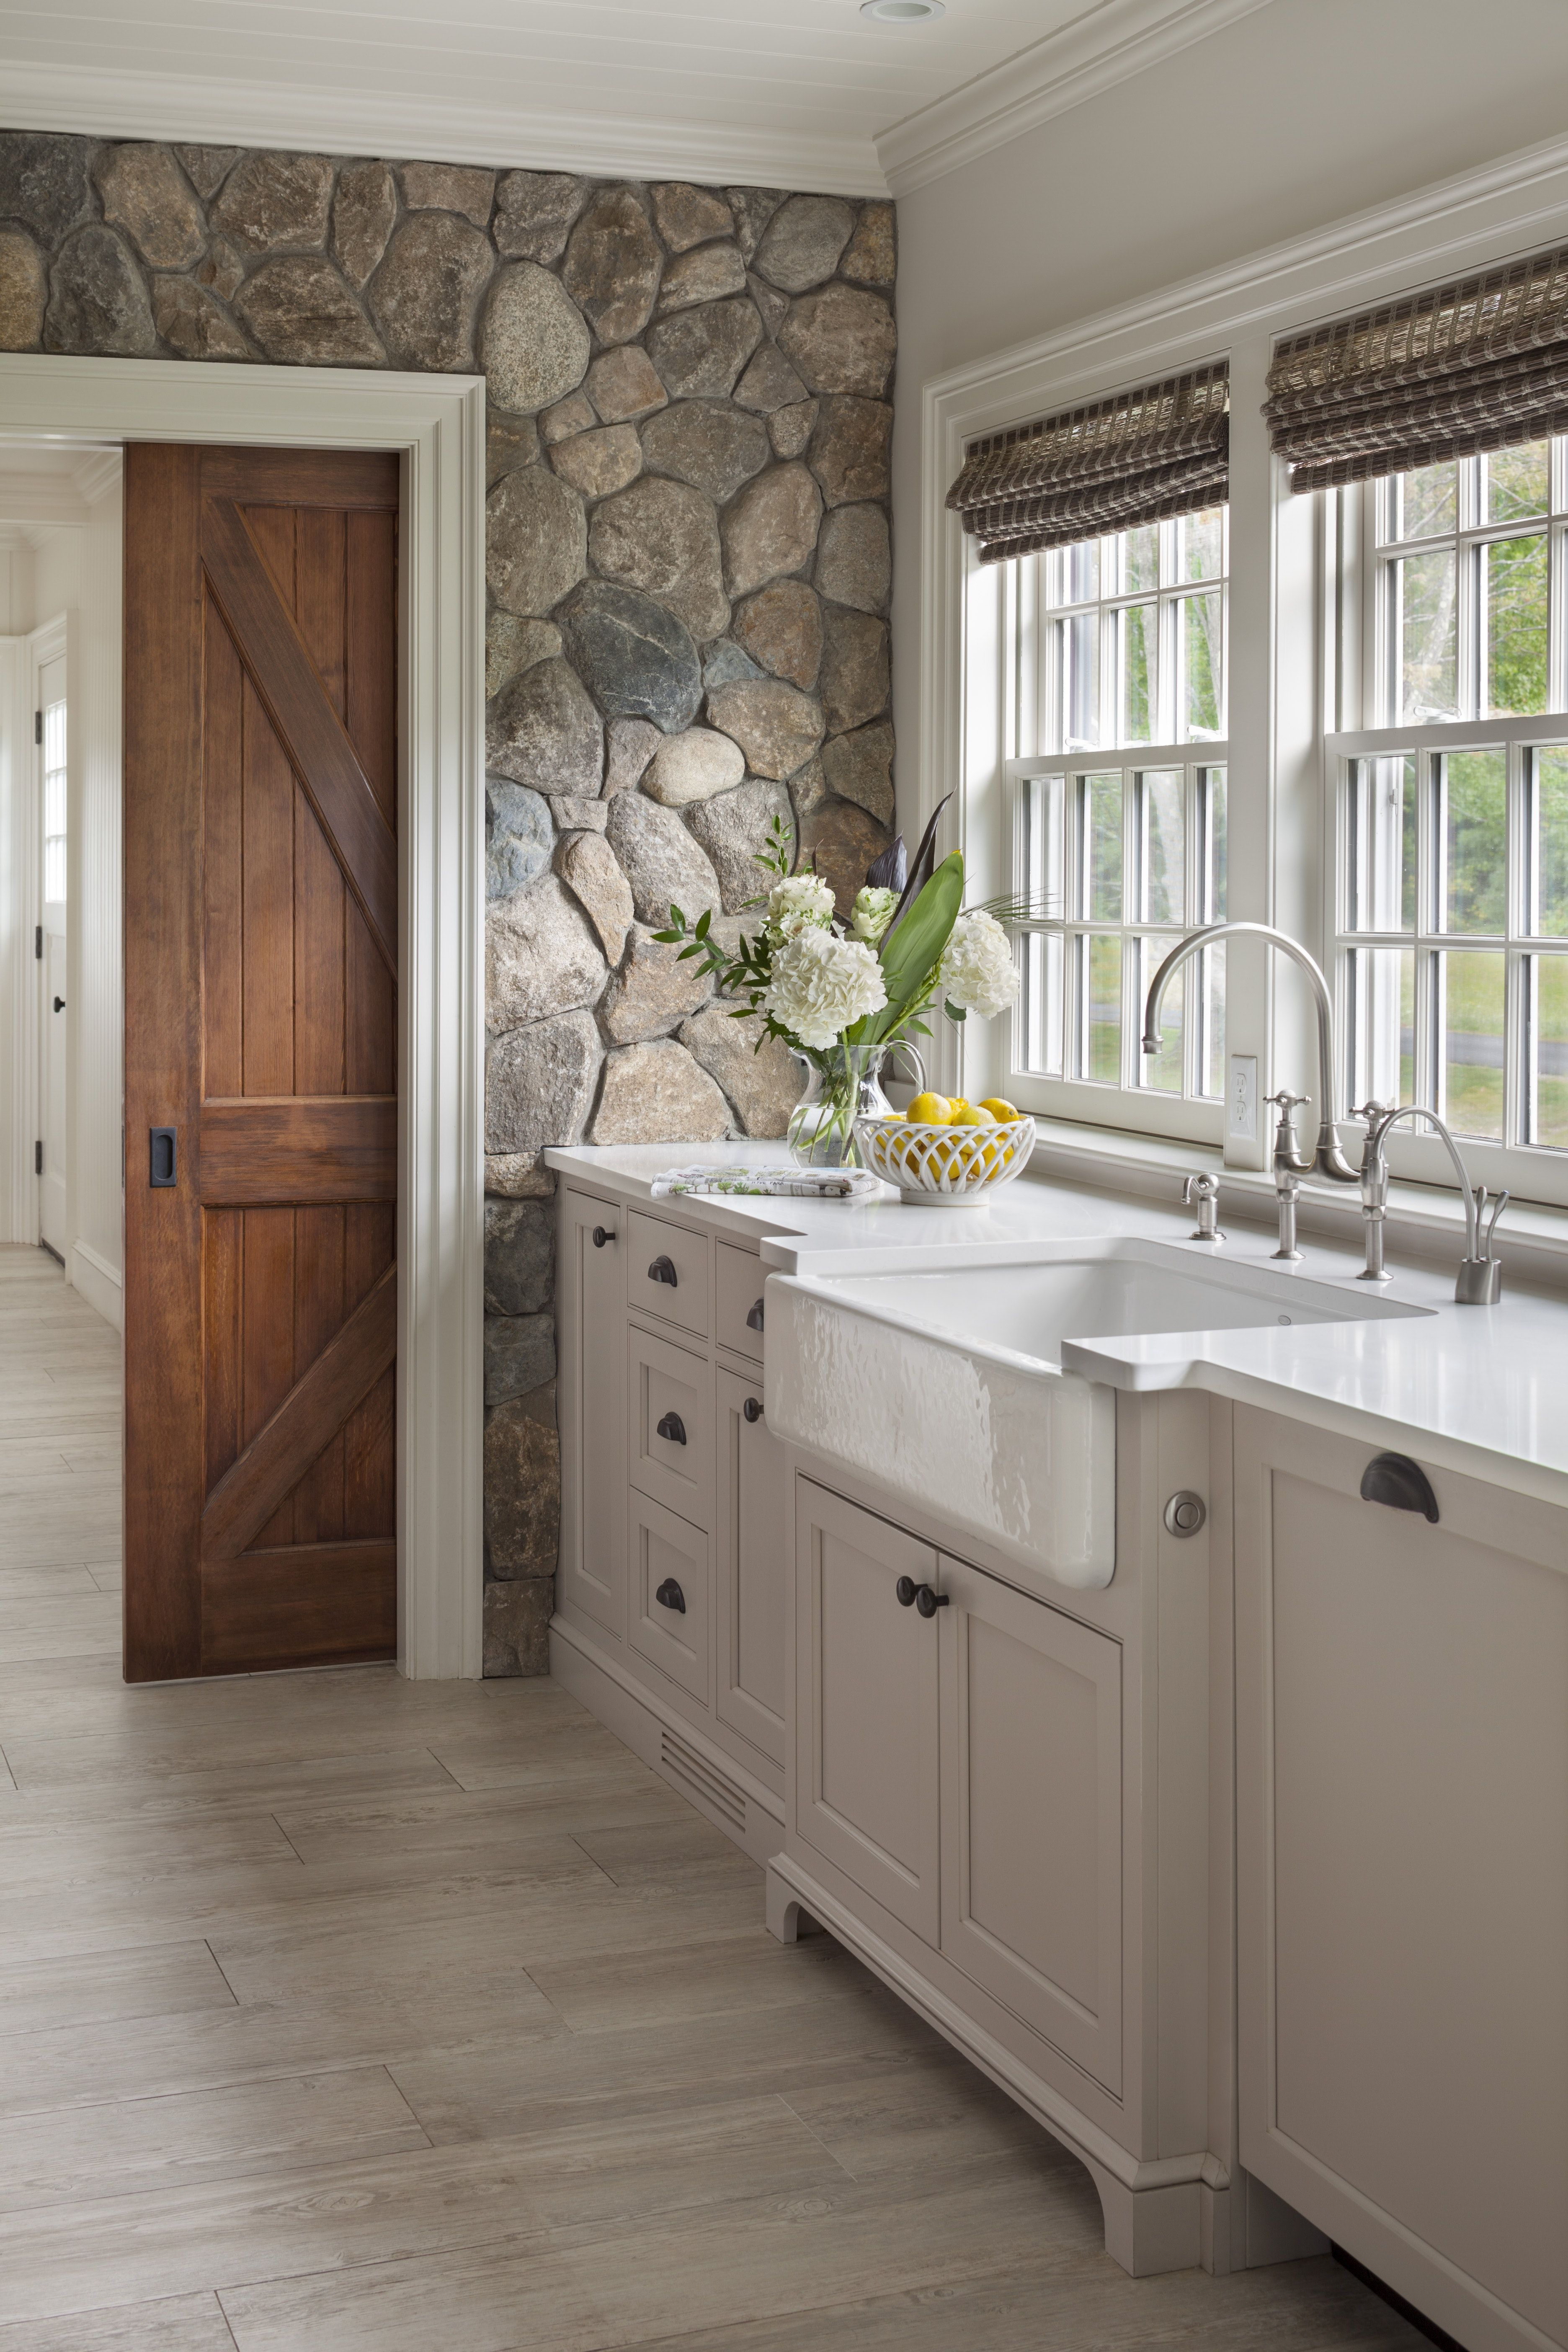 Farmhouse Kitchen With New England Fieldstone Accent Wall And Sliding Barn Door By Patrick Ahearn Architect Kitchen Decor Home Rustic House